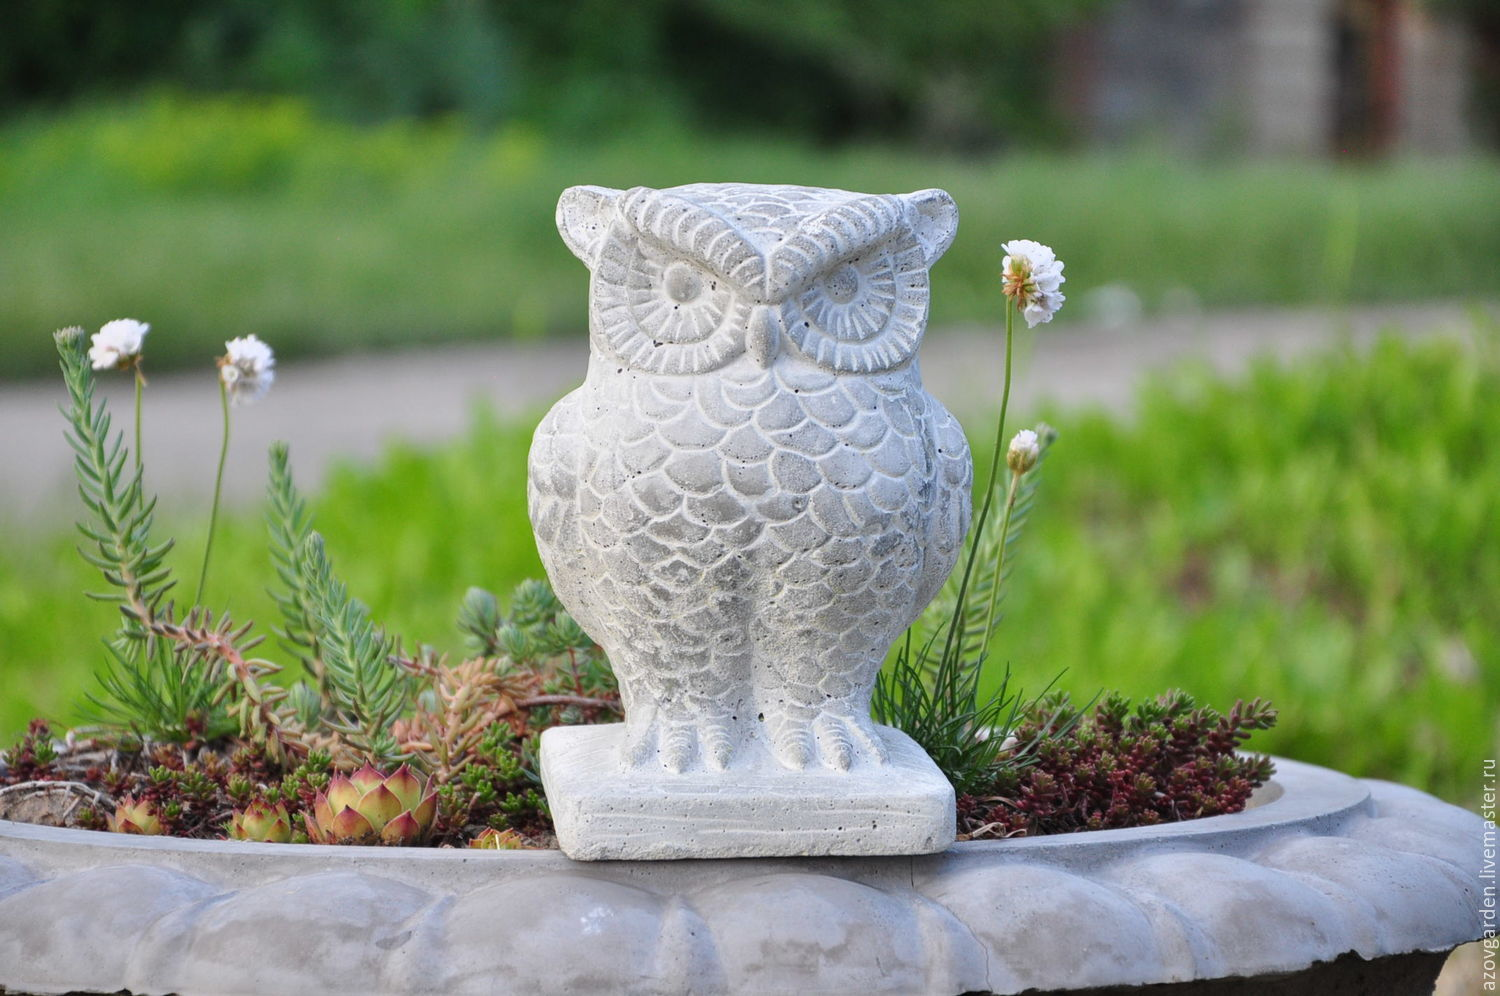 Provence Decoration The Garden Owl Statue Made Of Concrete In The Provence Style Decoration For Flower Beds Shop Online On Livemaster With Shipping